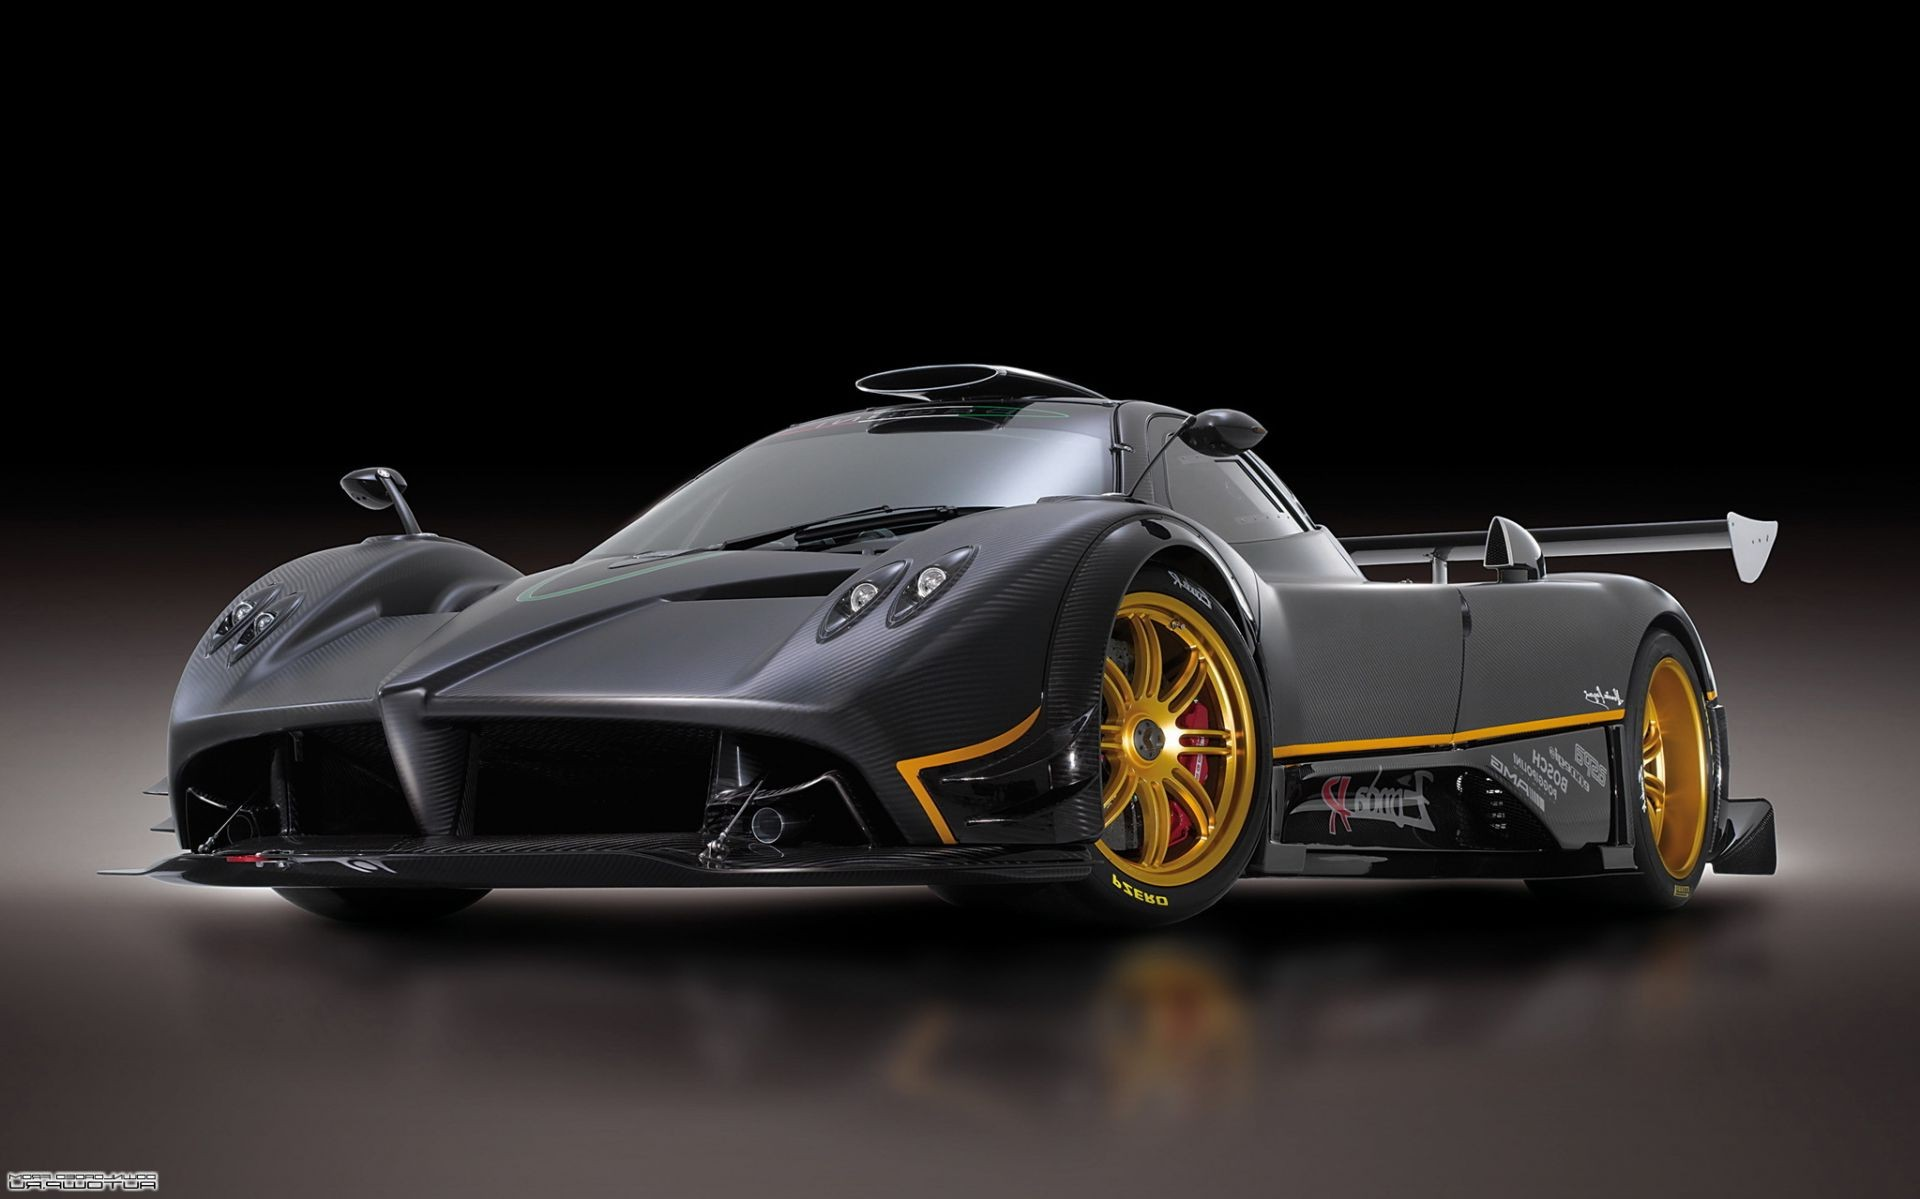 cars Pagani Probe supercar